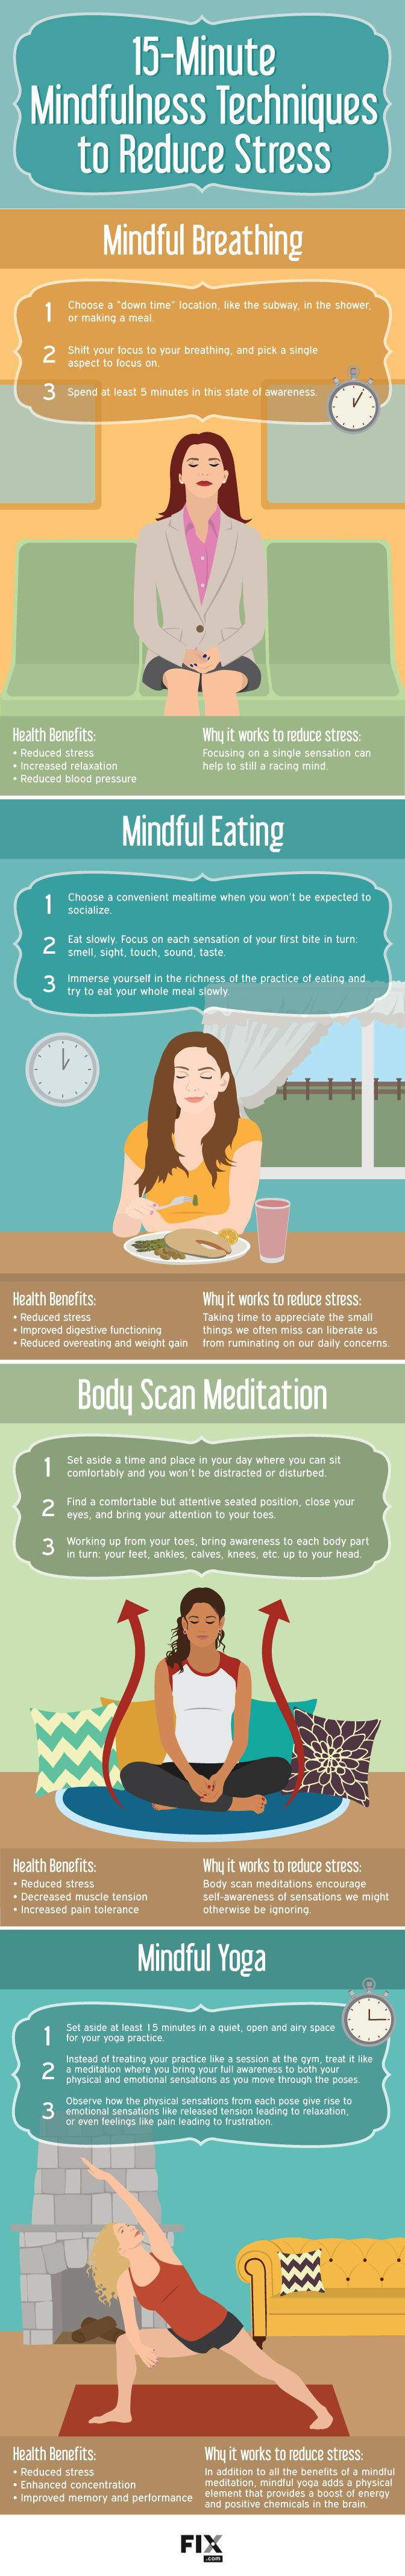 15-Minutes Mindfulness Techniques to Reduce Stress #infographic #Health #Yoga #Stress